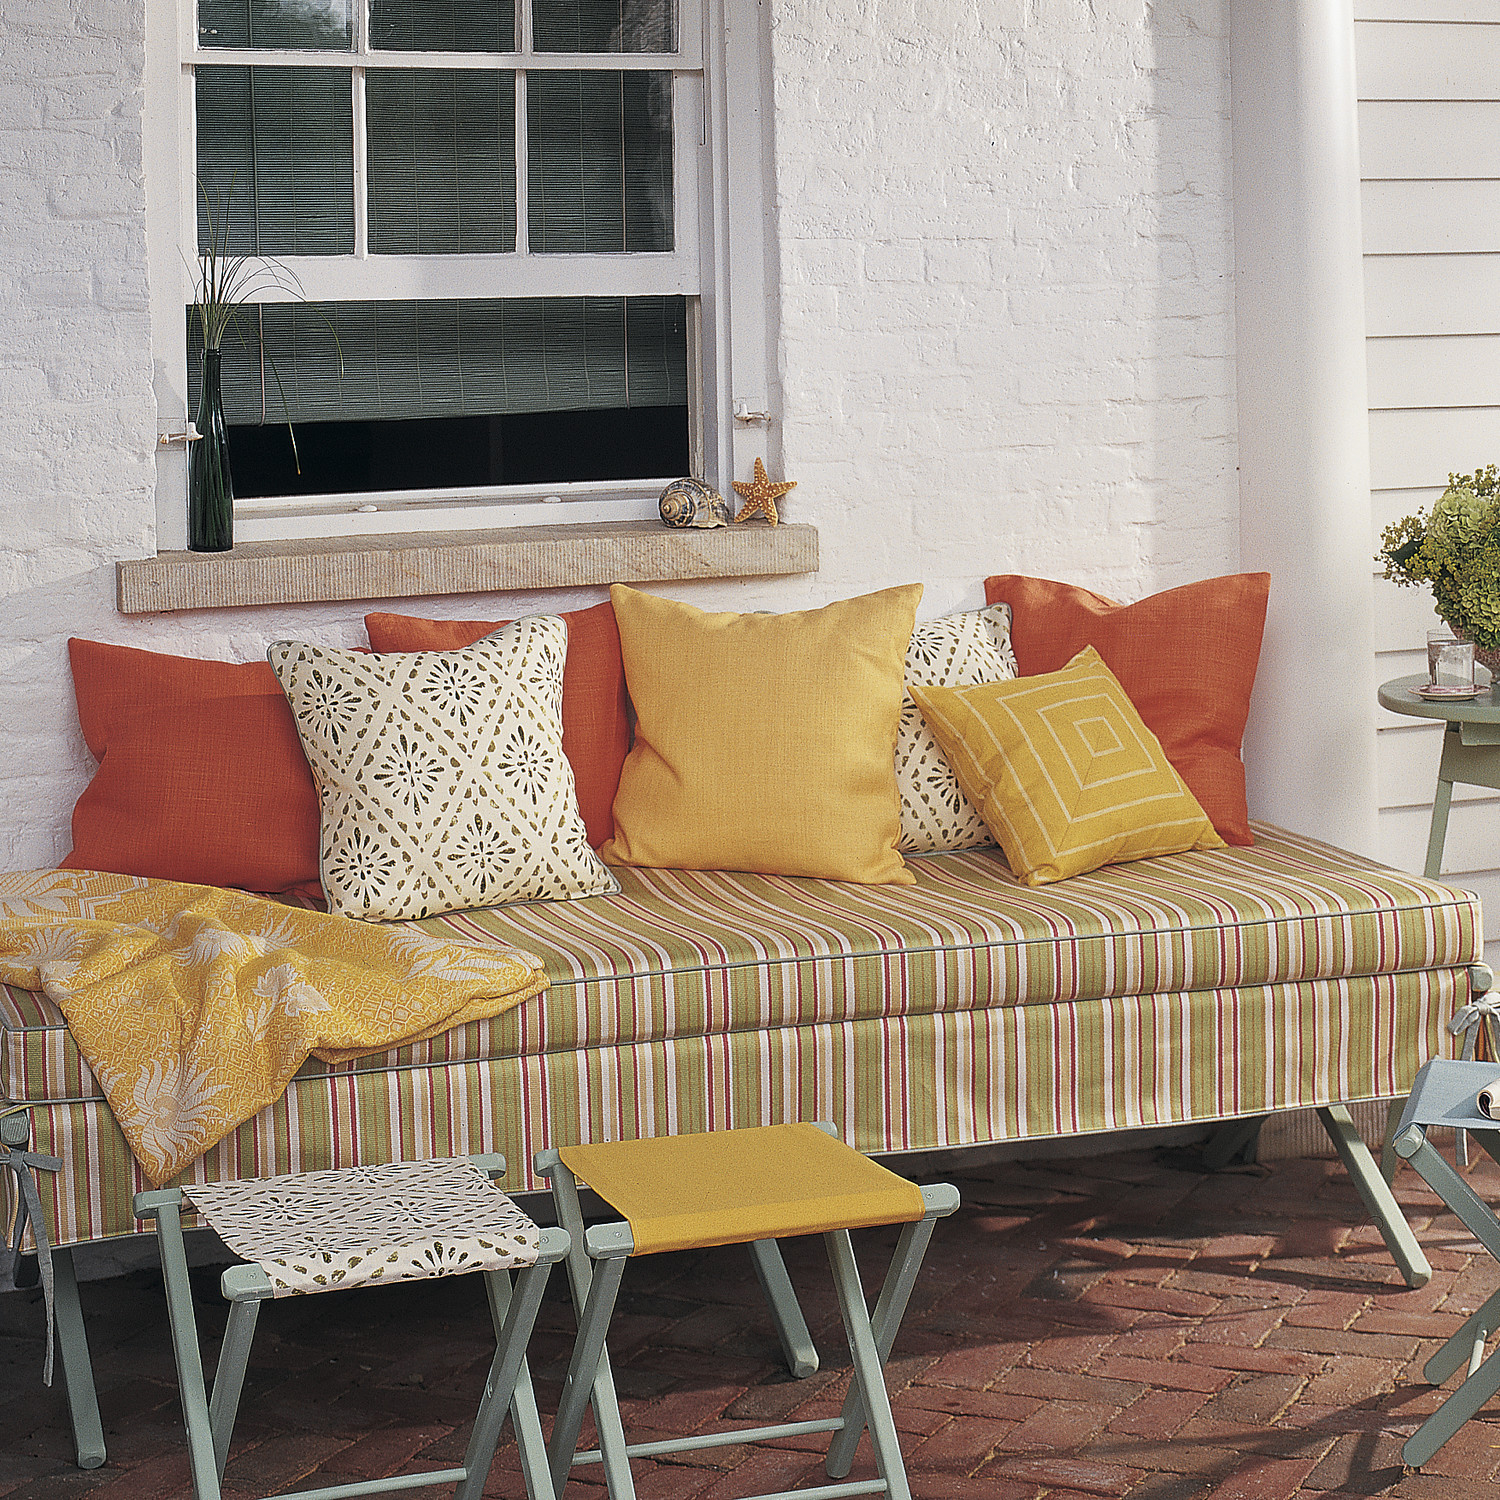 Outdoor furniture projects martha stewart for Martha stewart furniture